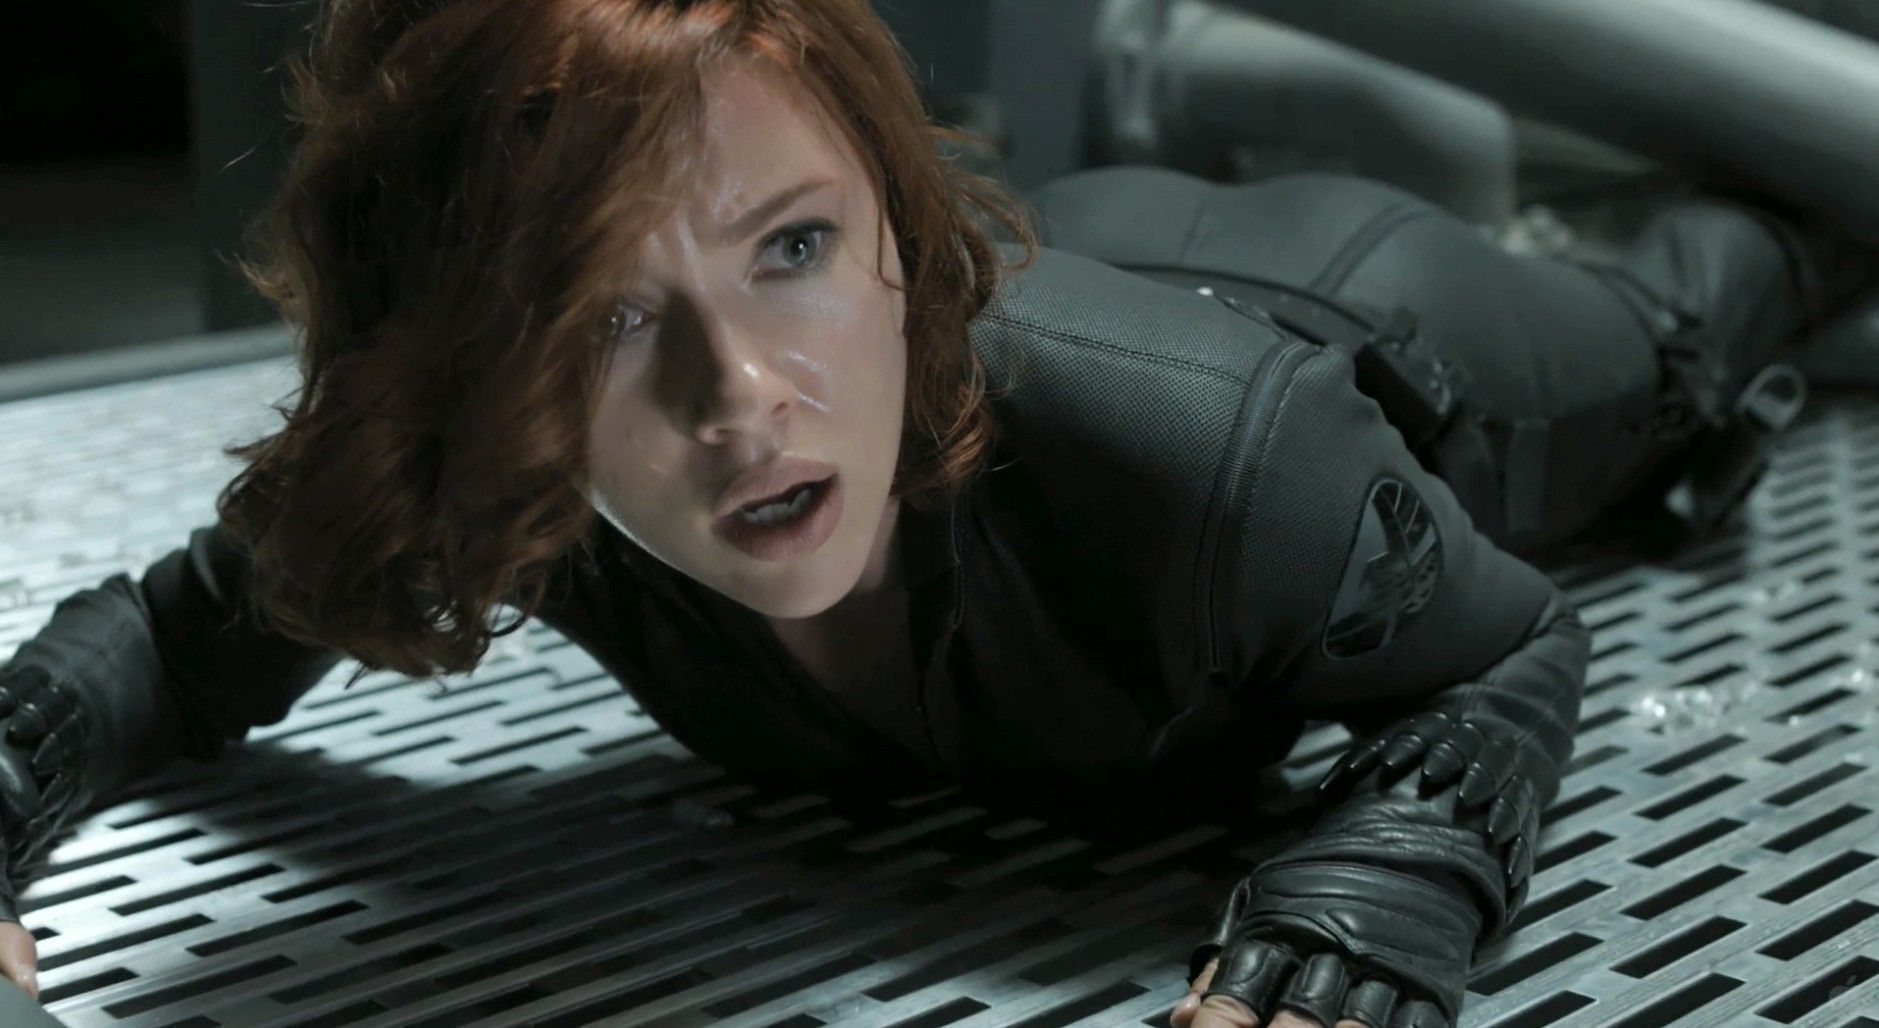 johansson sex black Scarlett avengers widow